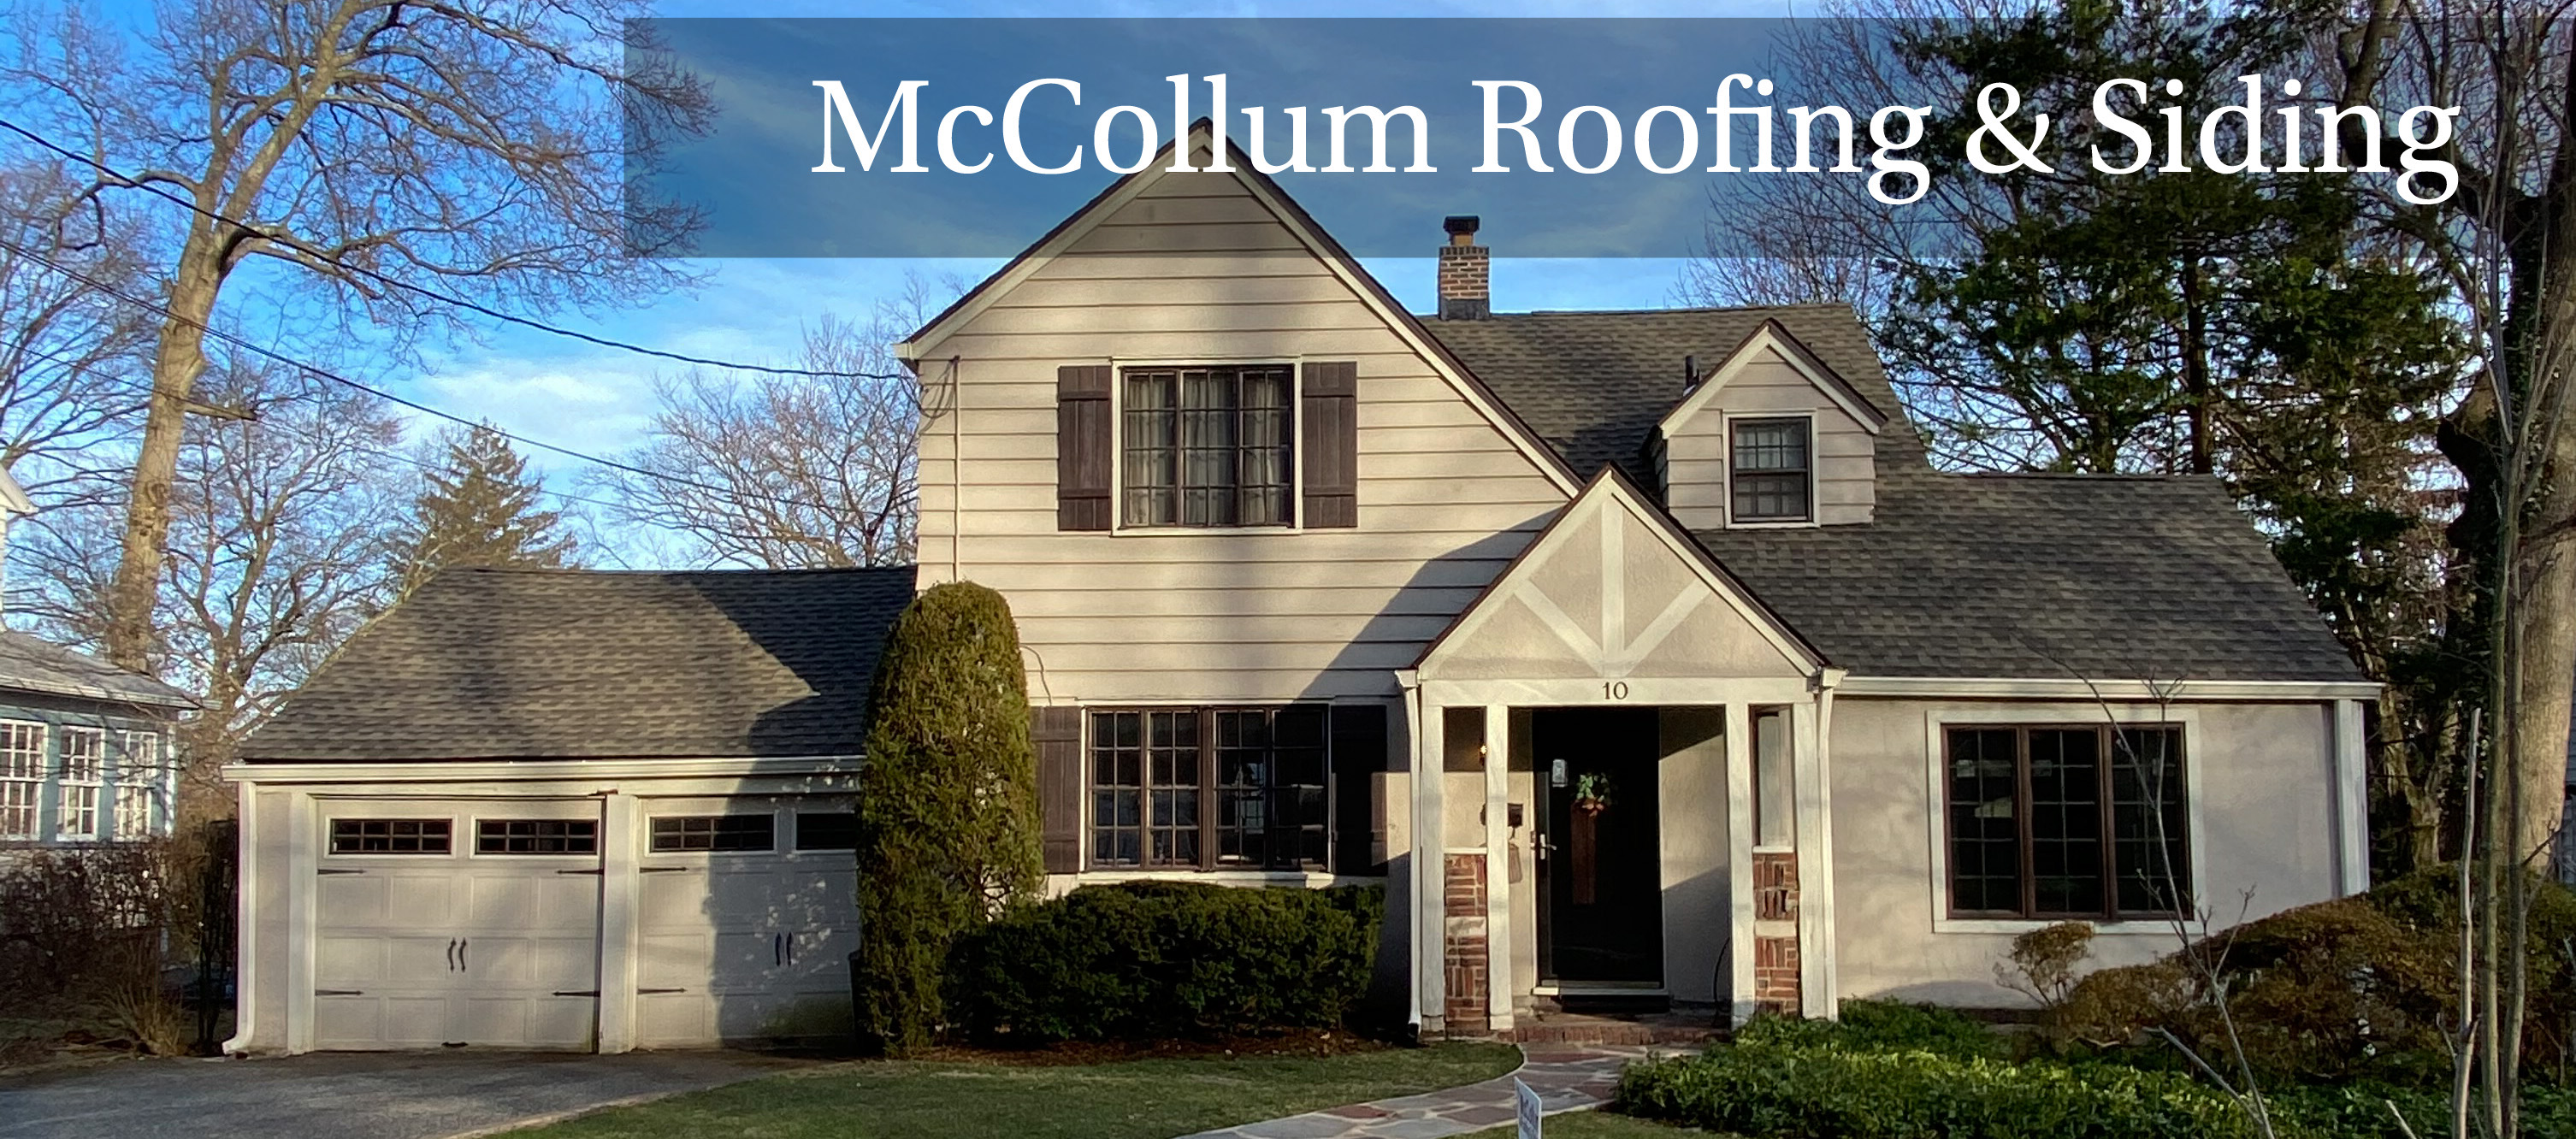 Corona Update We Are Open For Business Mccollum Roofing Siding